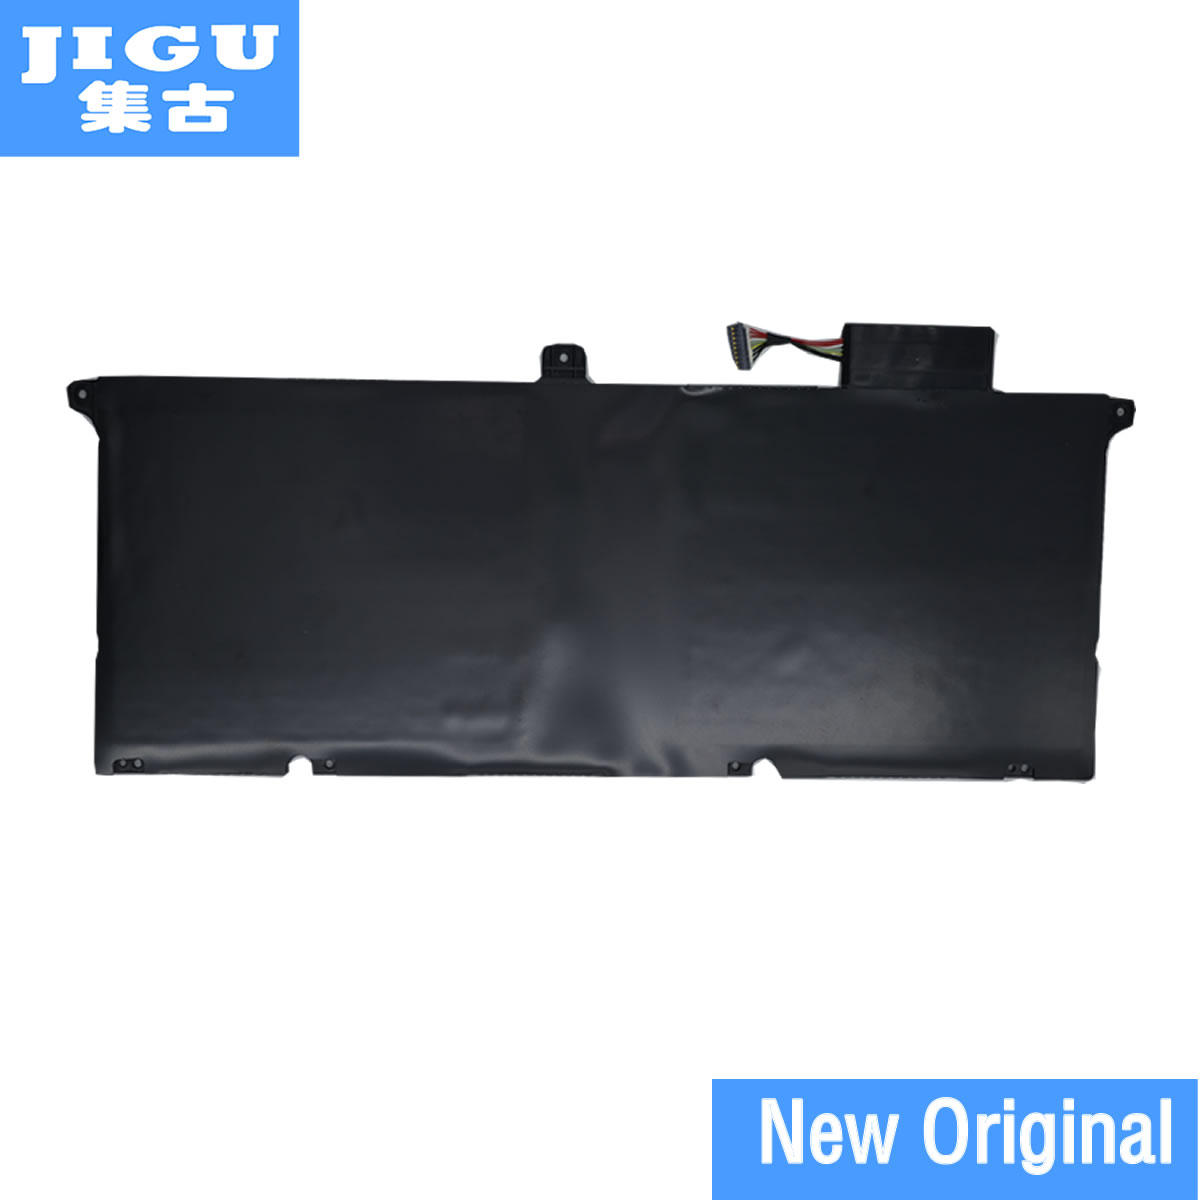 JIGU AA-PBXN8AR Replacement Laptop Battery For Samsung 900X4 900X46 900X4B-A01DE 900X4B-A01FR 900X4B-A03 900X4C-A01 NP900X4 комплект 3d ковриков в салон автомобиля novline autofamily ford mondeo 2015